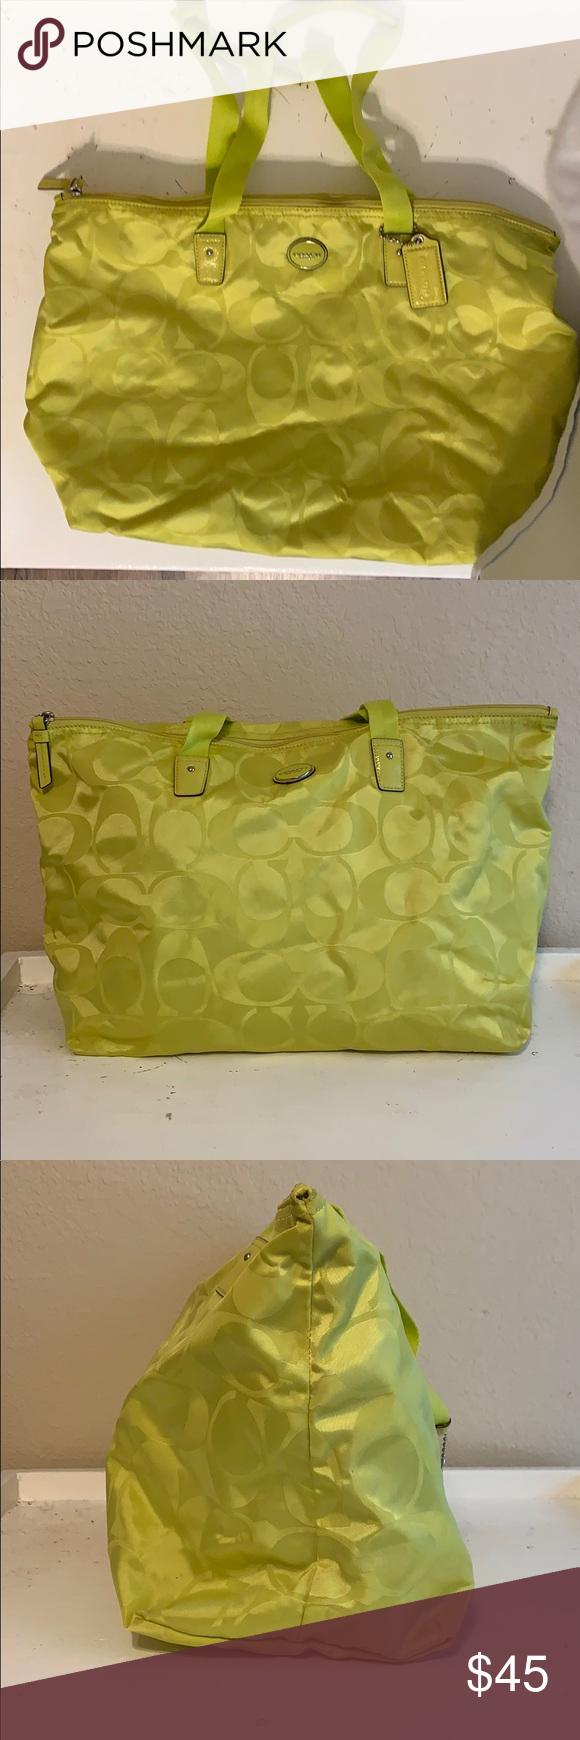 Coach Signature Bag & Snap Pouch Chartreuse / yellow bag